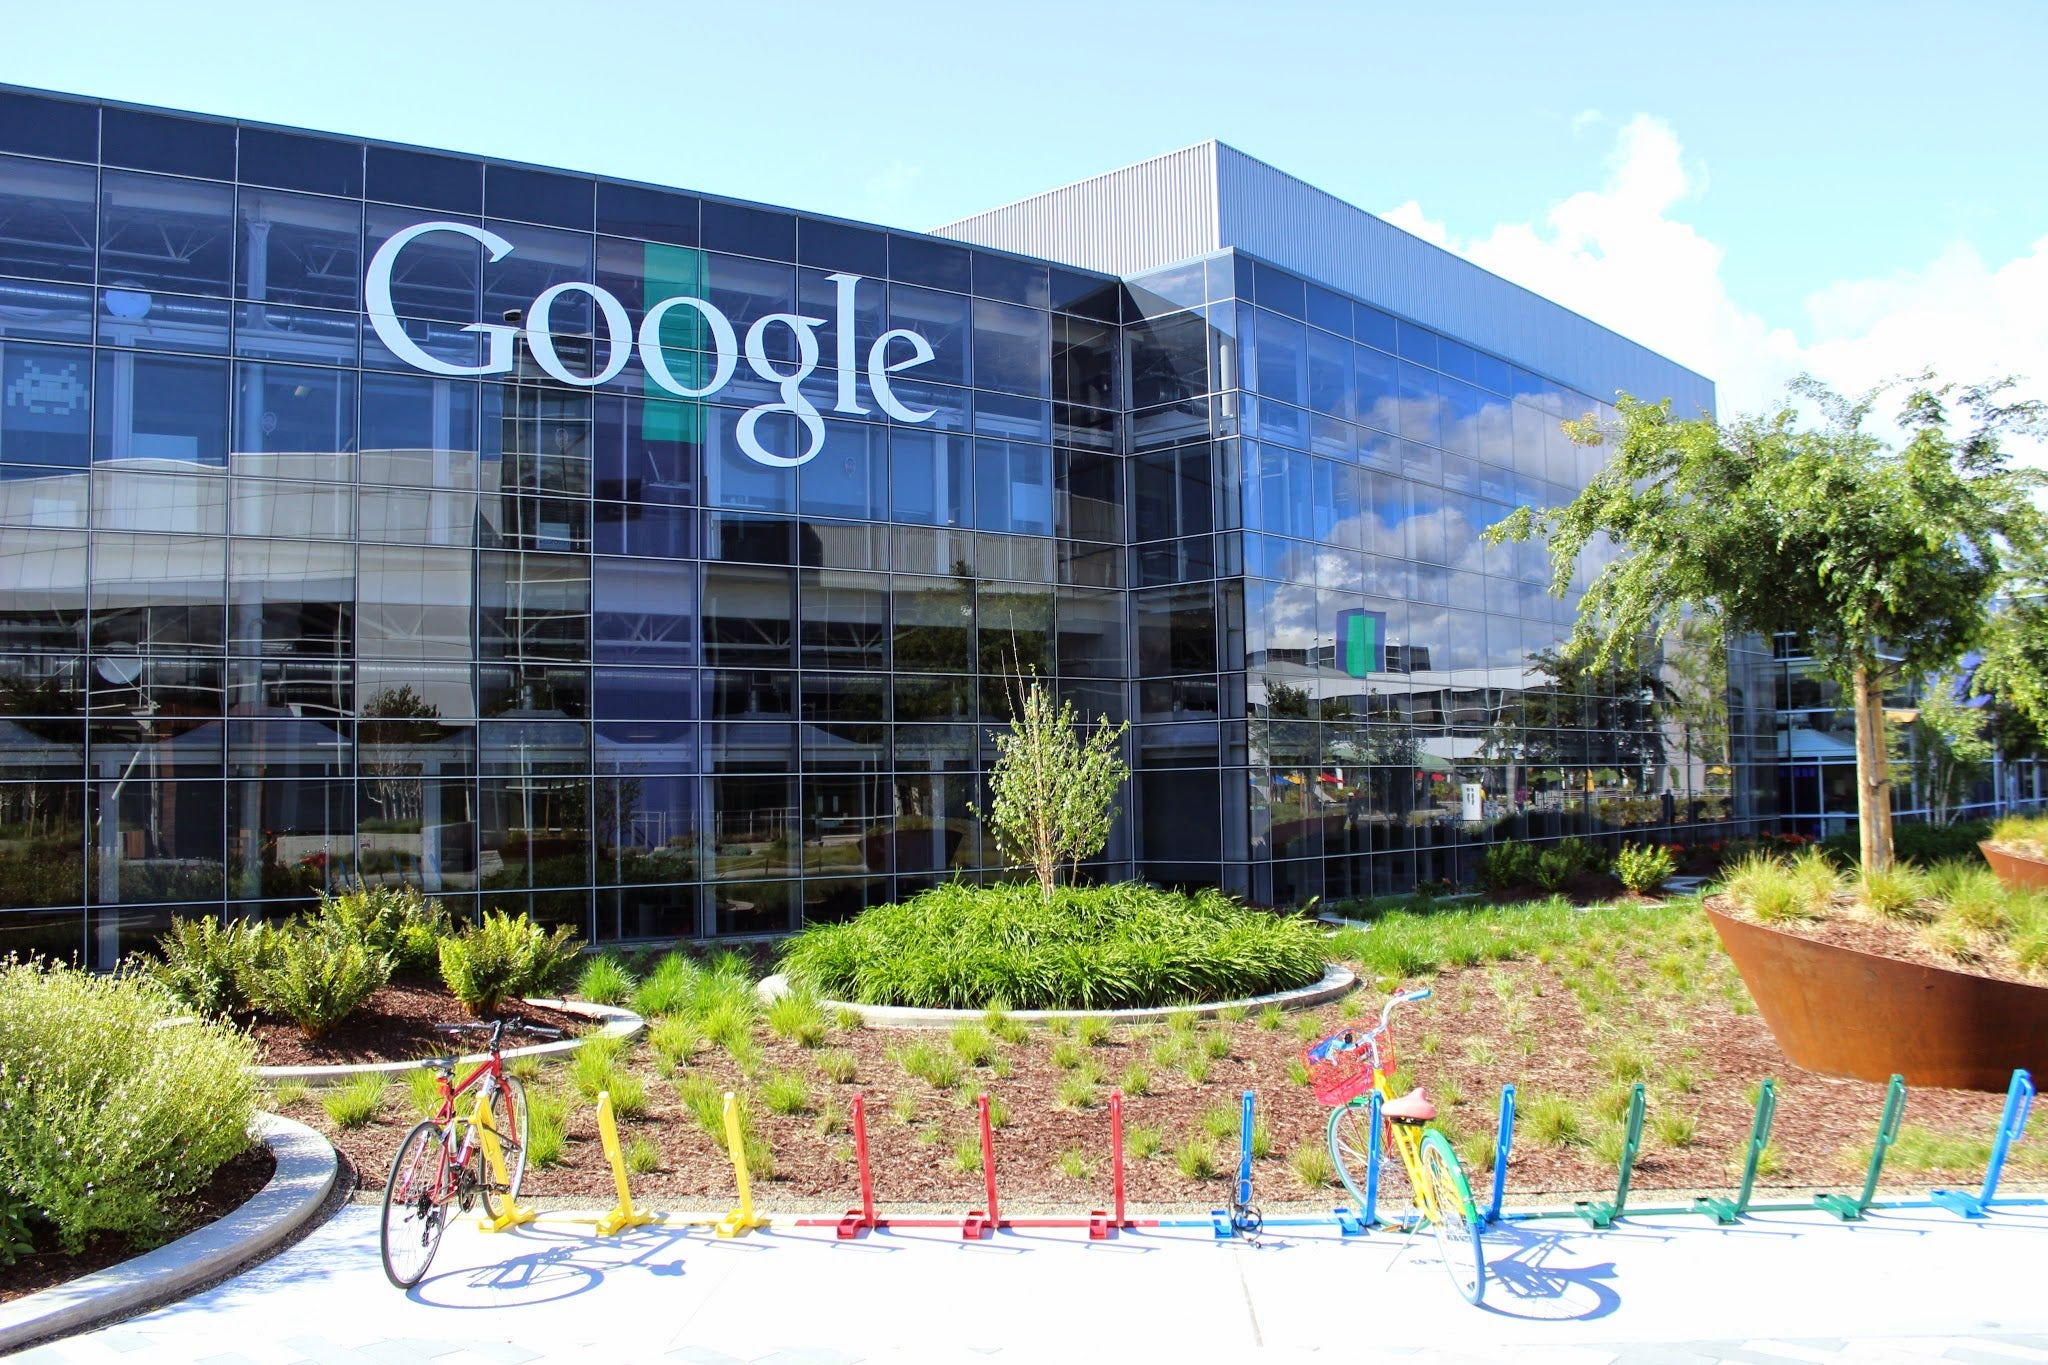 Alphabet headquarters building with the Google logo on the side